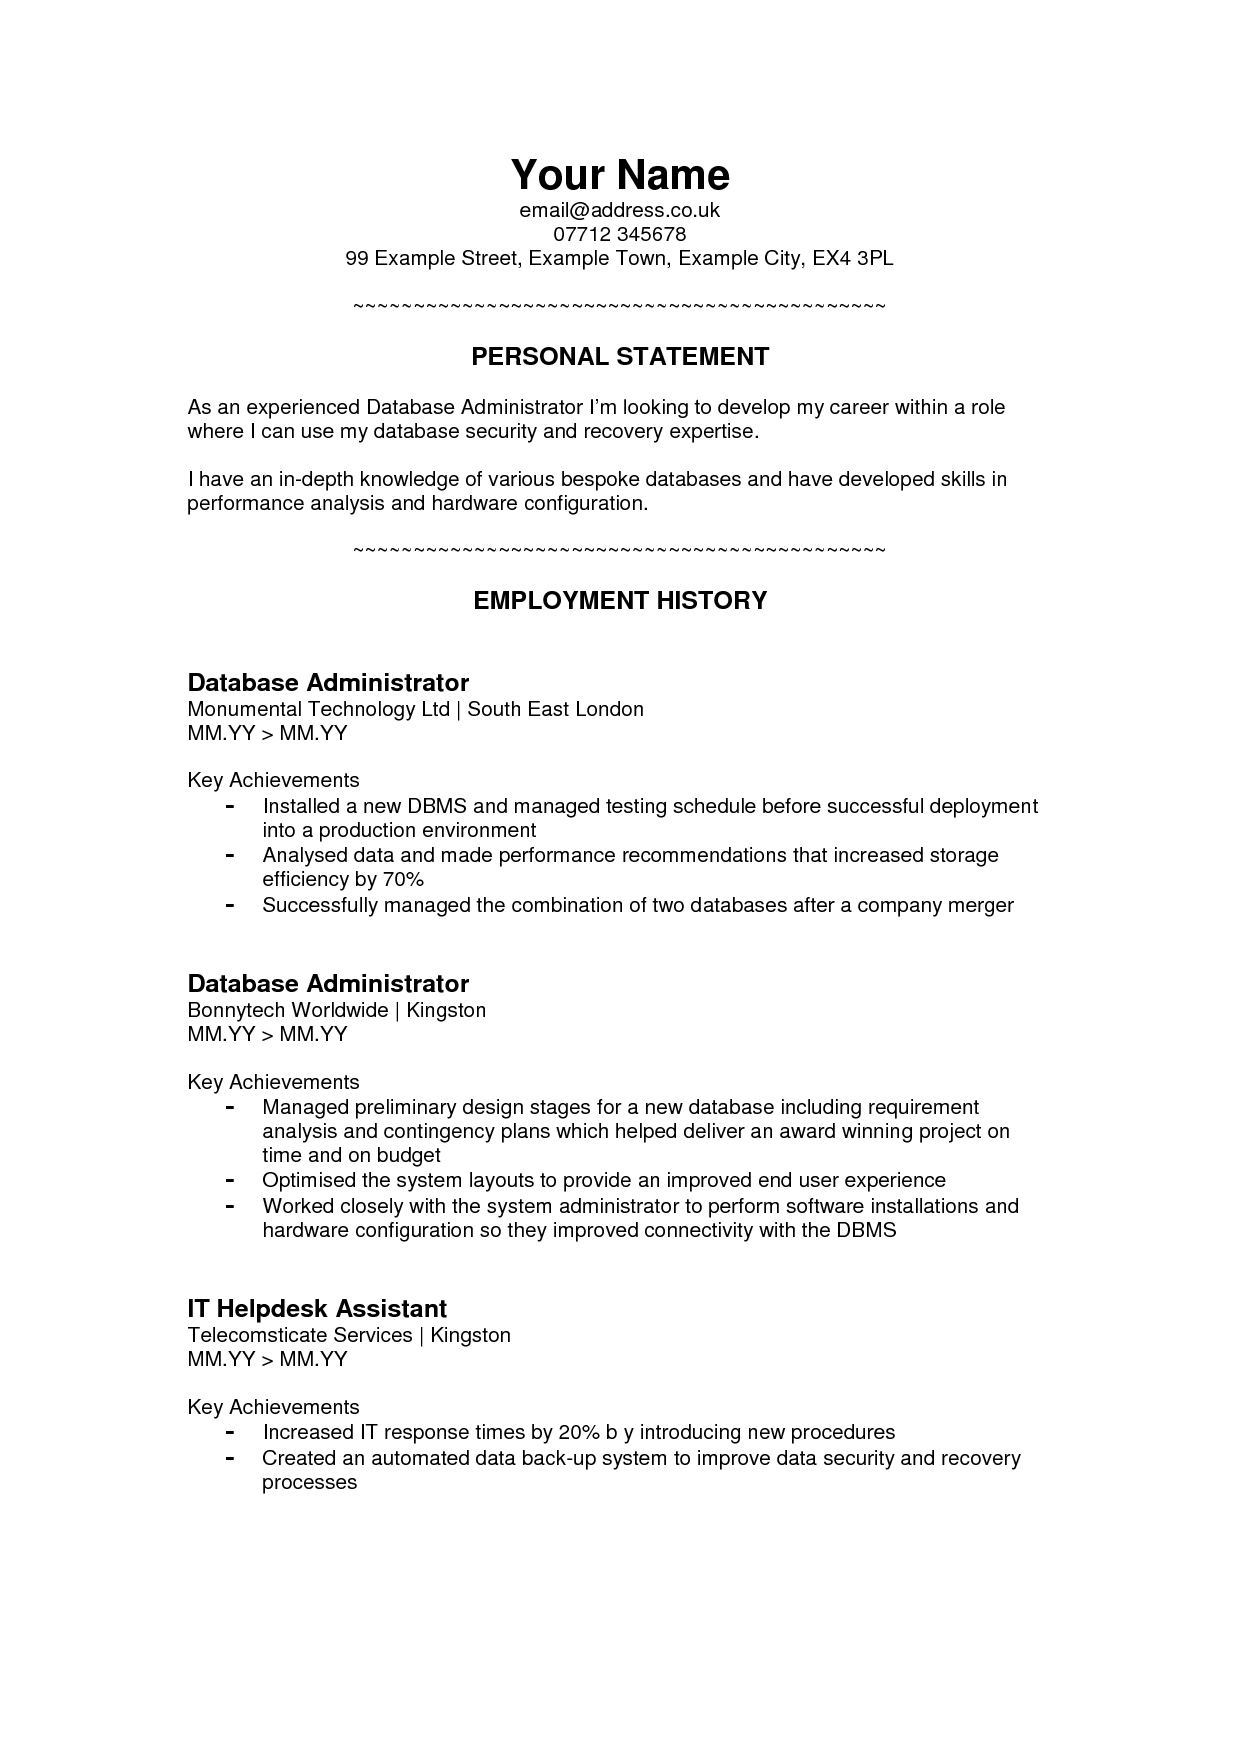 Personal Branding Statement Resume Examples Png  Home Design Idea